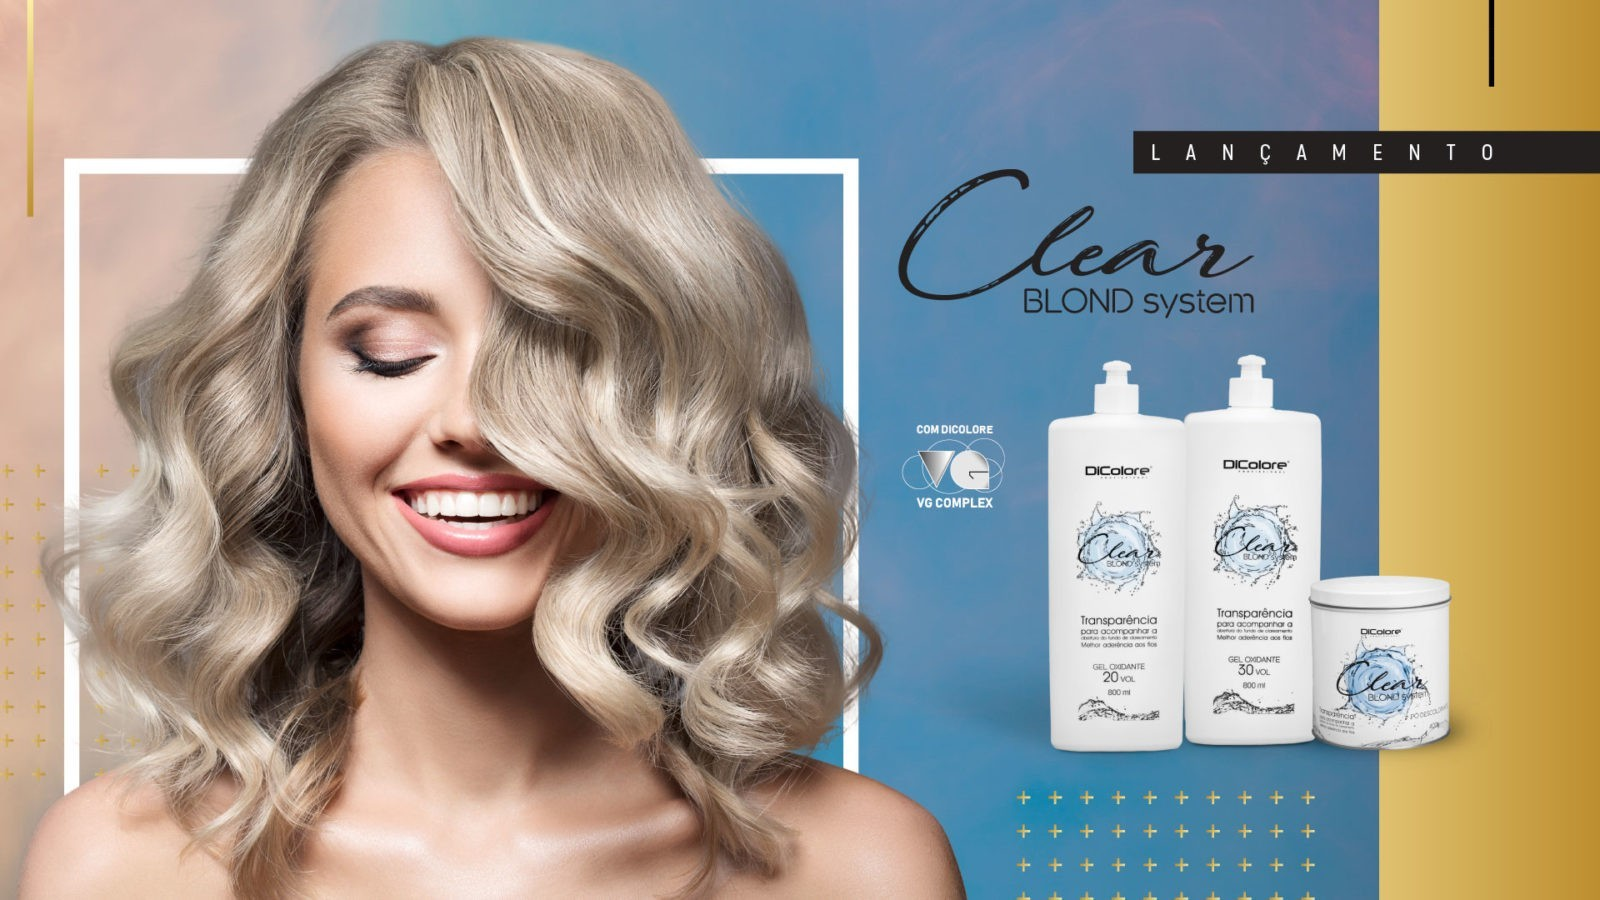 dicolore clear blond system